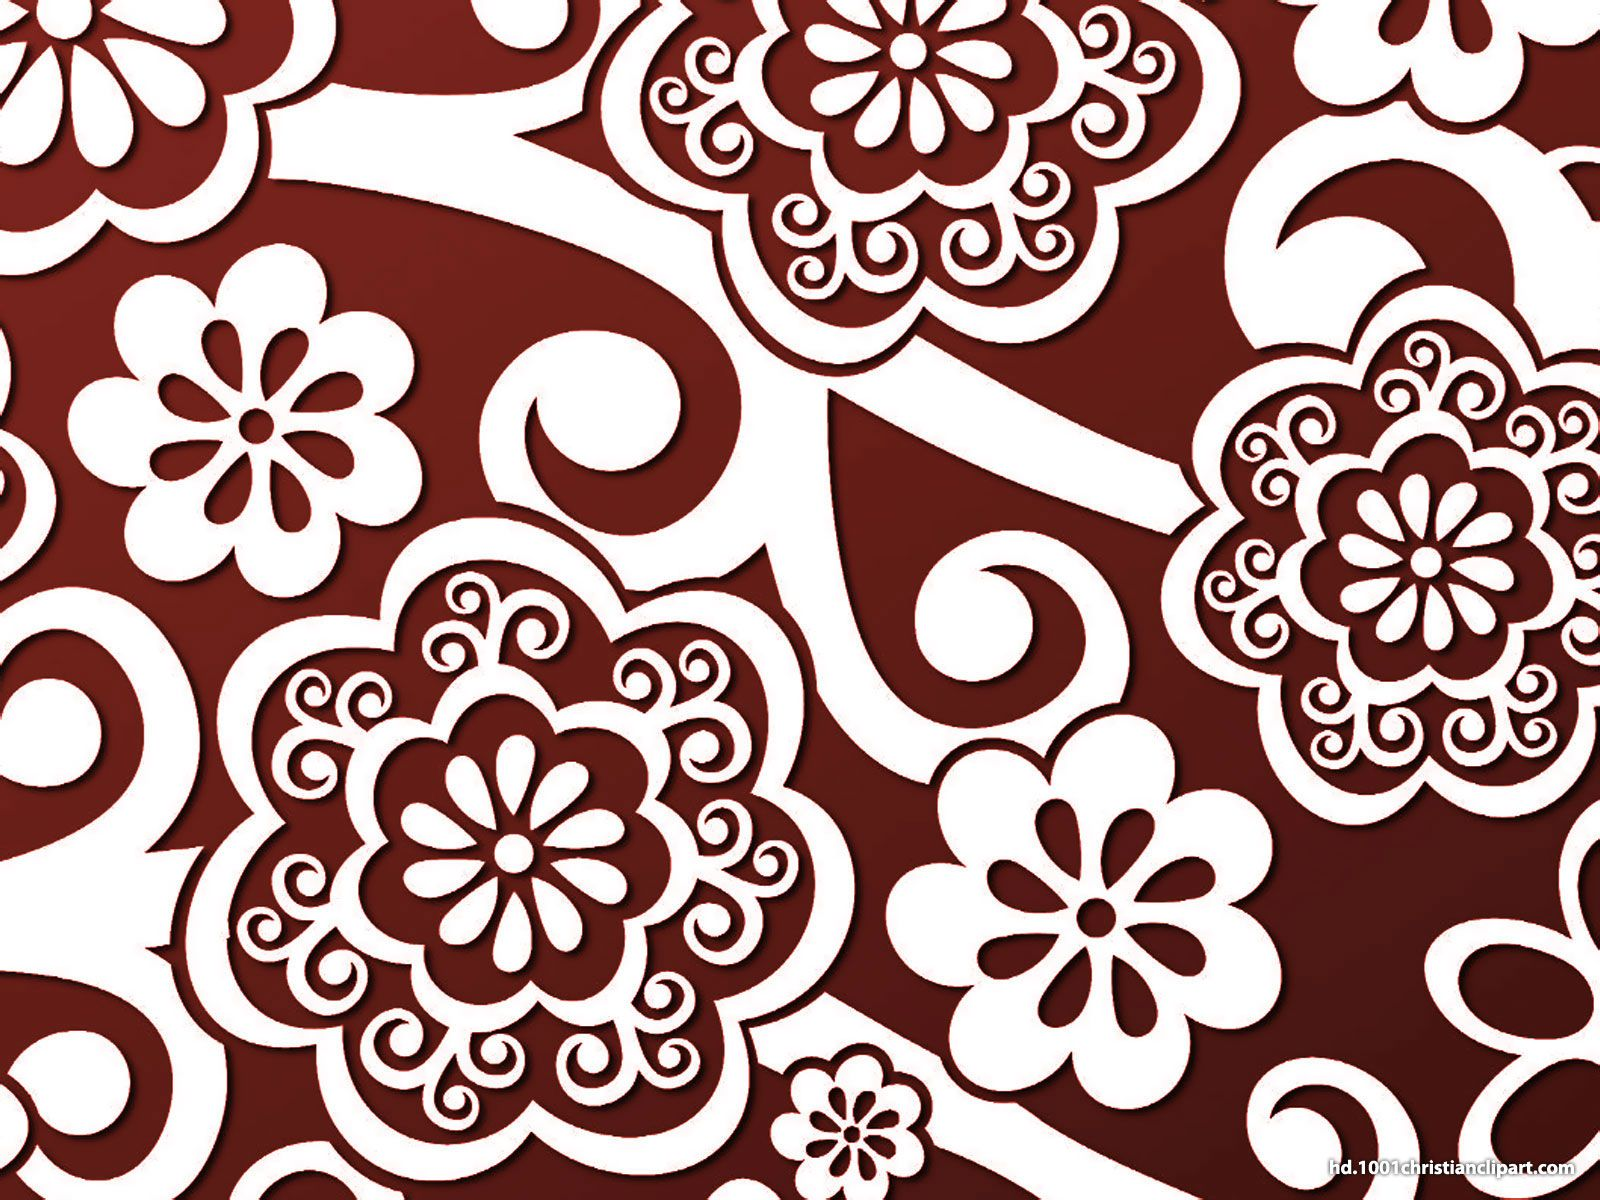 Make your presentation stunning with the batik background image for make your presentation stunning with the batik background image for powerpoint templates and background graphics toneelgroepblik Image collections